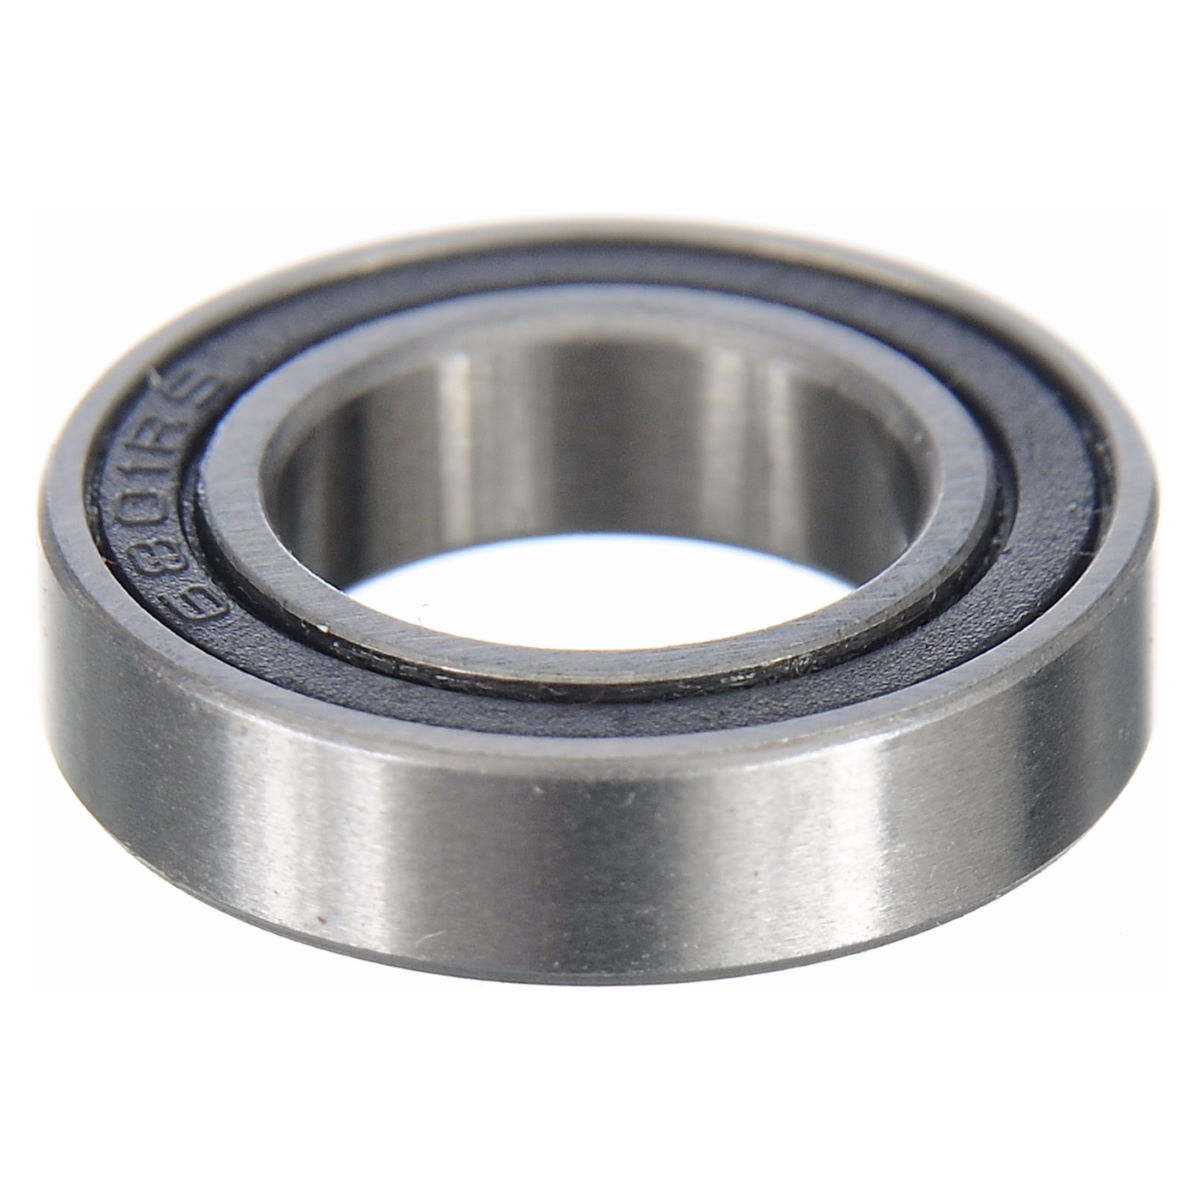 Brand-X Brand-X Sealed Bearing - 6801-2RS Bearing   Wheel Hub Spares